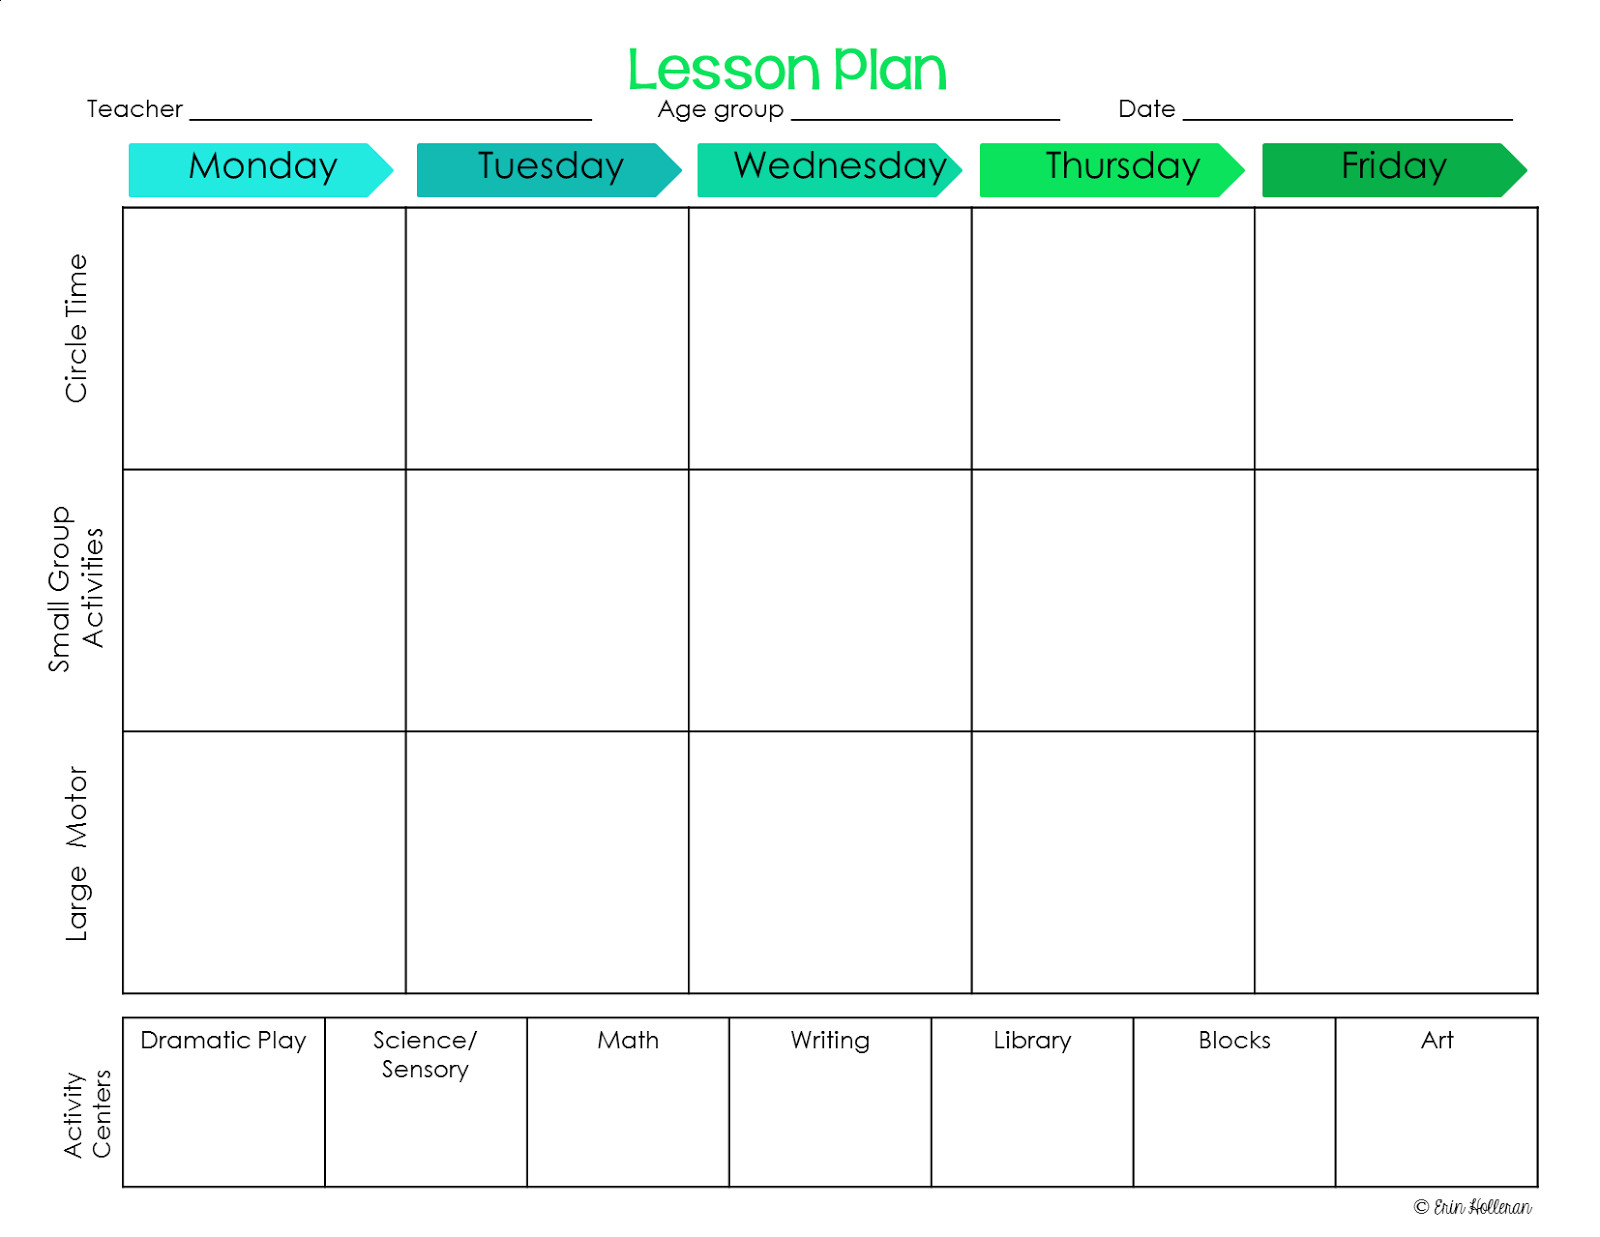 Lesson Plan Templates Preschool Preschool Ponderings Make Your Lesson Plans Work for You